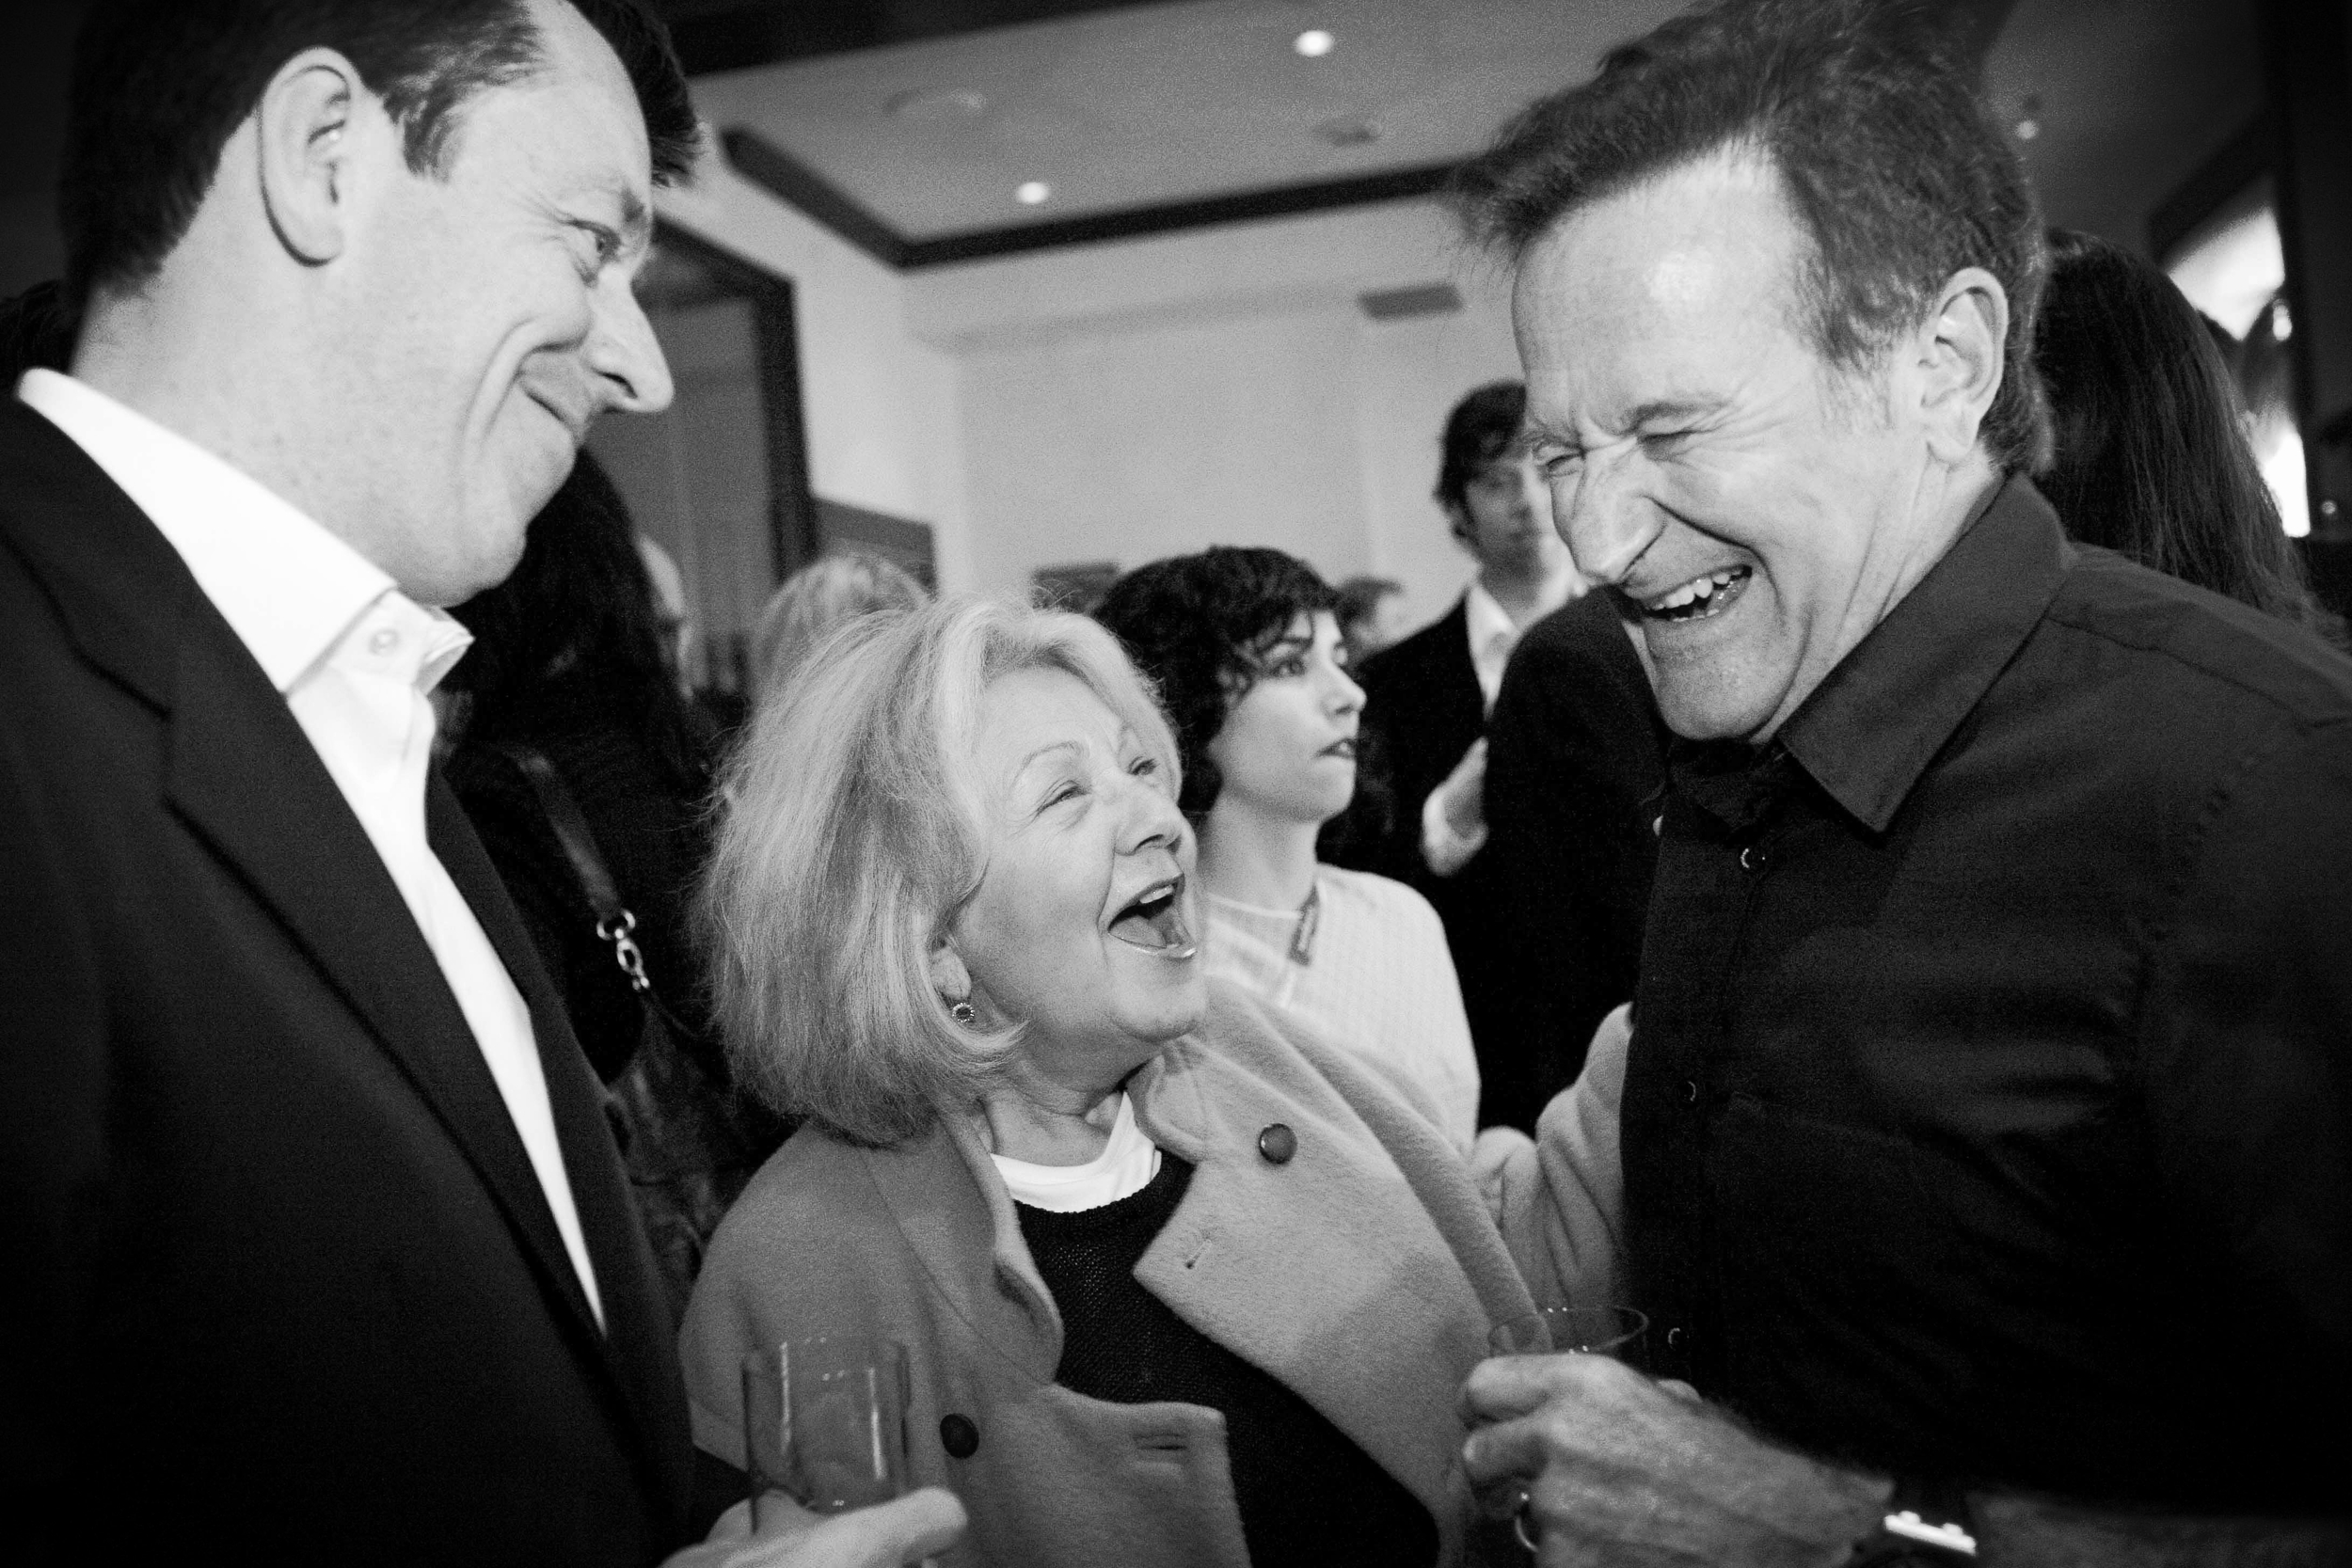 Peter J. Owens Award recipient Robin Williams with Peter Morgan and Jeanette Etheredge at the 50th SFIFF